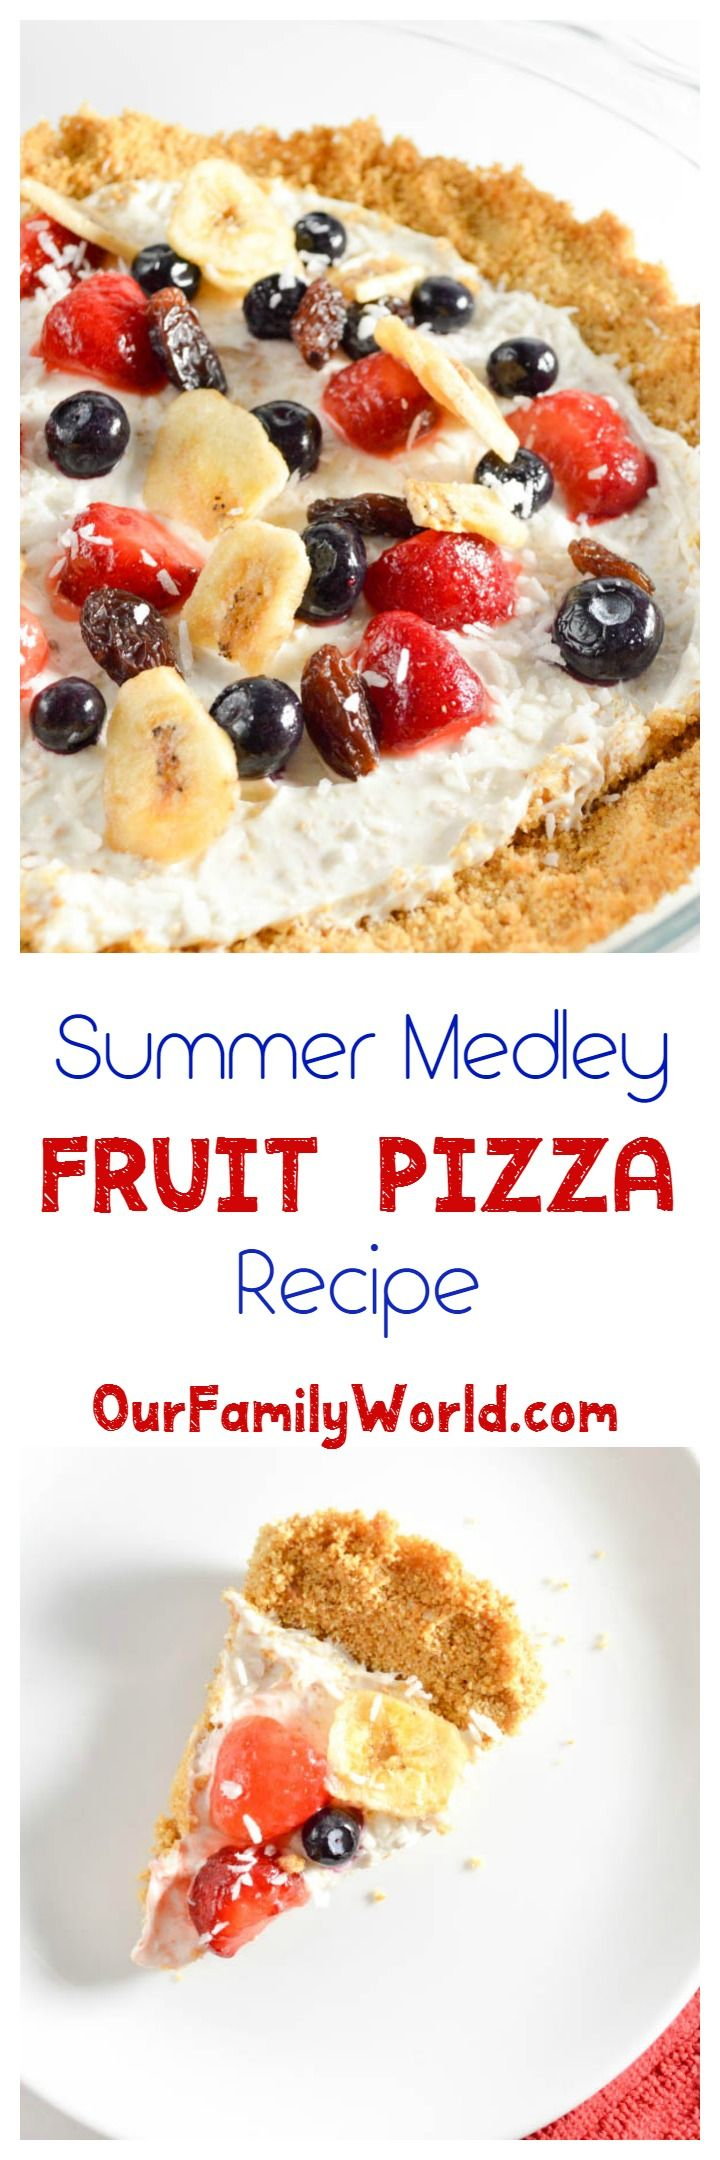 Looking for a healthy dessert idea? How about an easy fruit pizza? They're so much fun to make and really take advantage of all the delicious summer fruits!